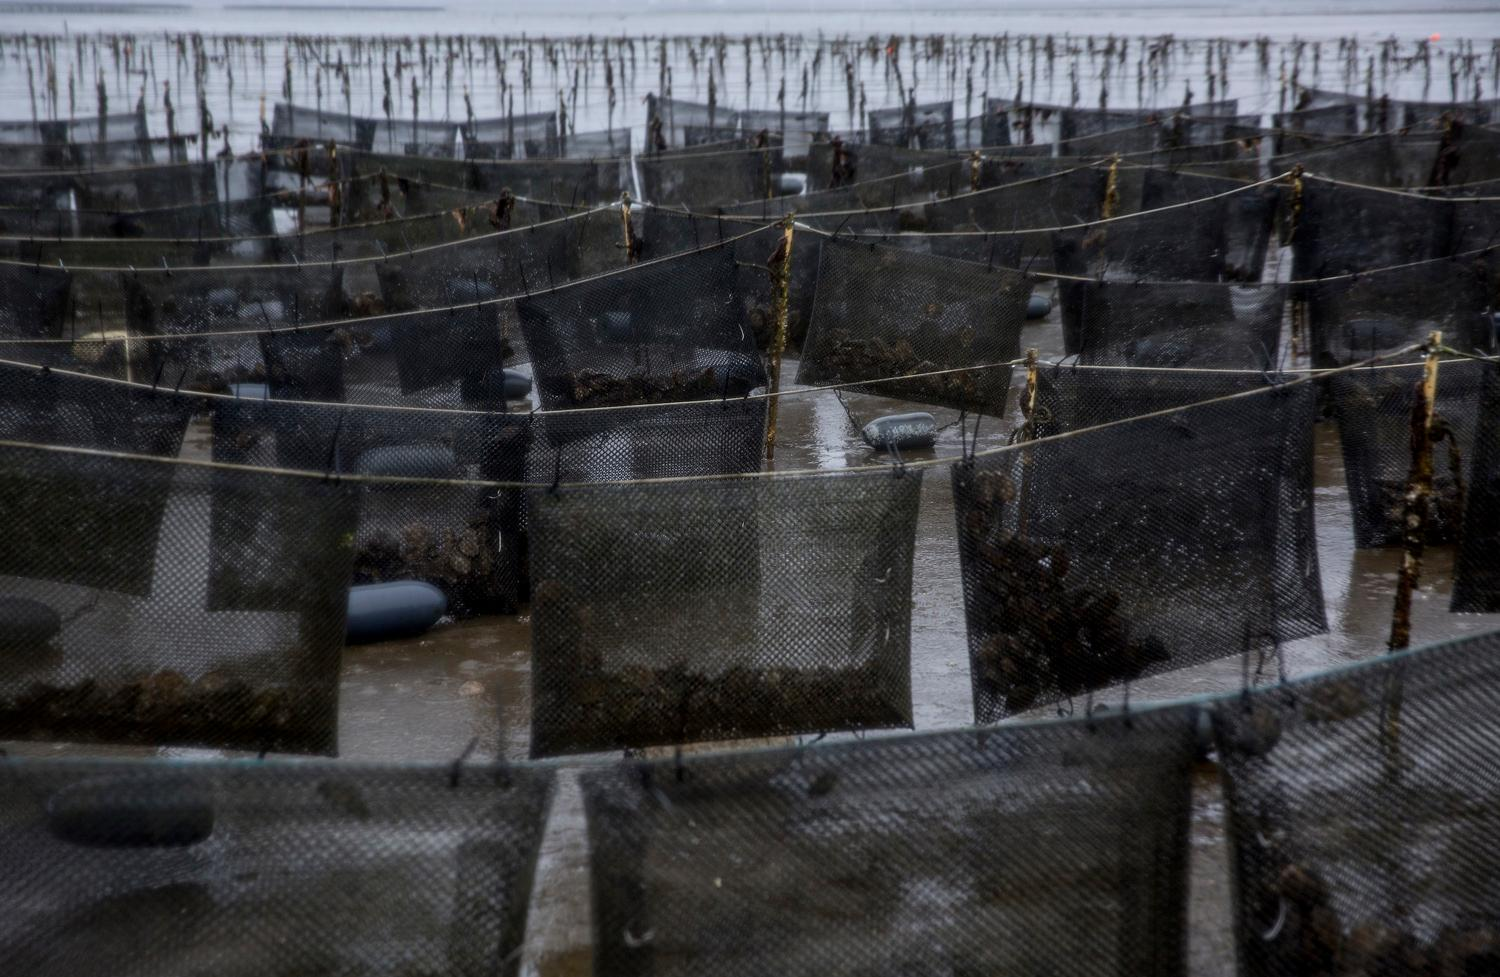 Oysters grow in flip bags, a technique that keeps the oysters safe from predators and encourages growth of big, thick oysters, by agitating the oysters as the tides change. (Sy Bean / Seattle Refined)